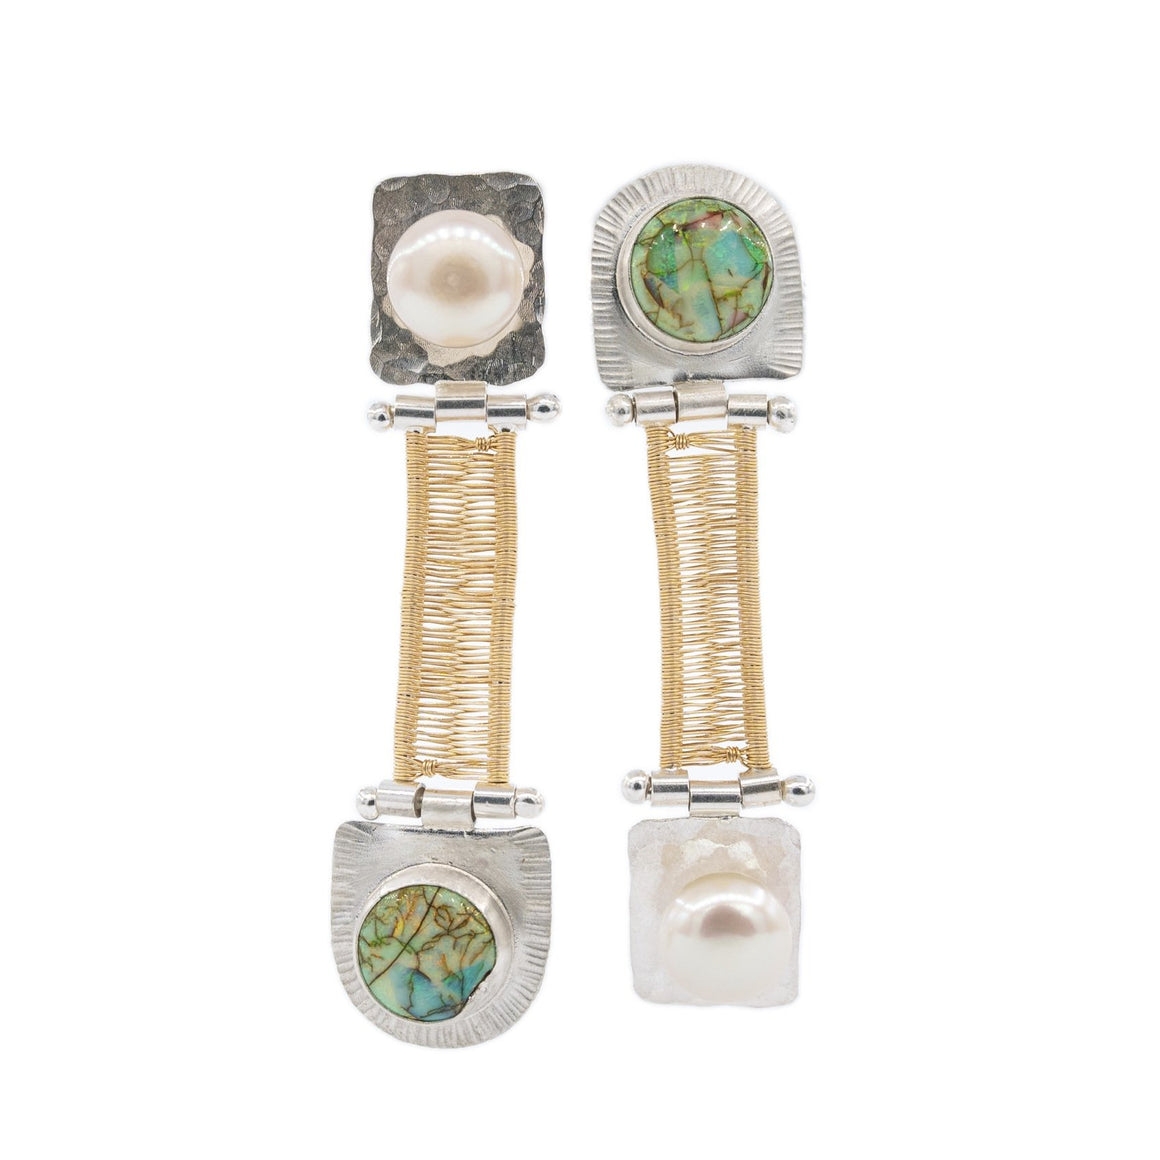 Pearl and Opal mixed metal silver and gold double hinged earrings hand woven by Original Sin Jewelry topsy turvy